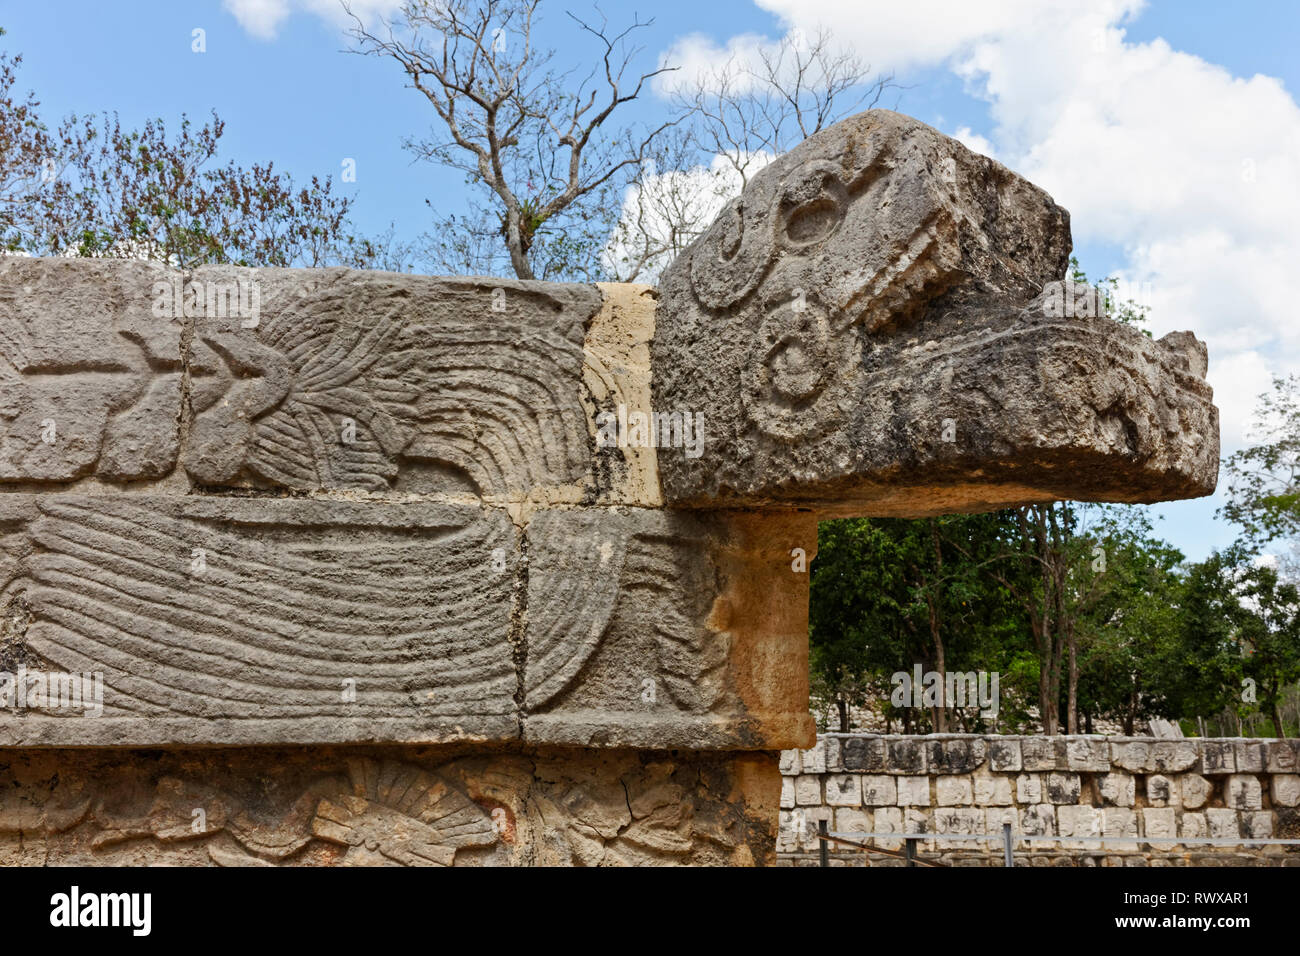 The head of Mayan carved stone snake with geometric ornamentation on its body from Chechen Itza - Stock Image